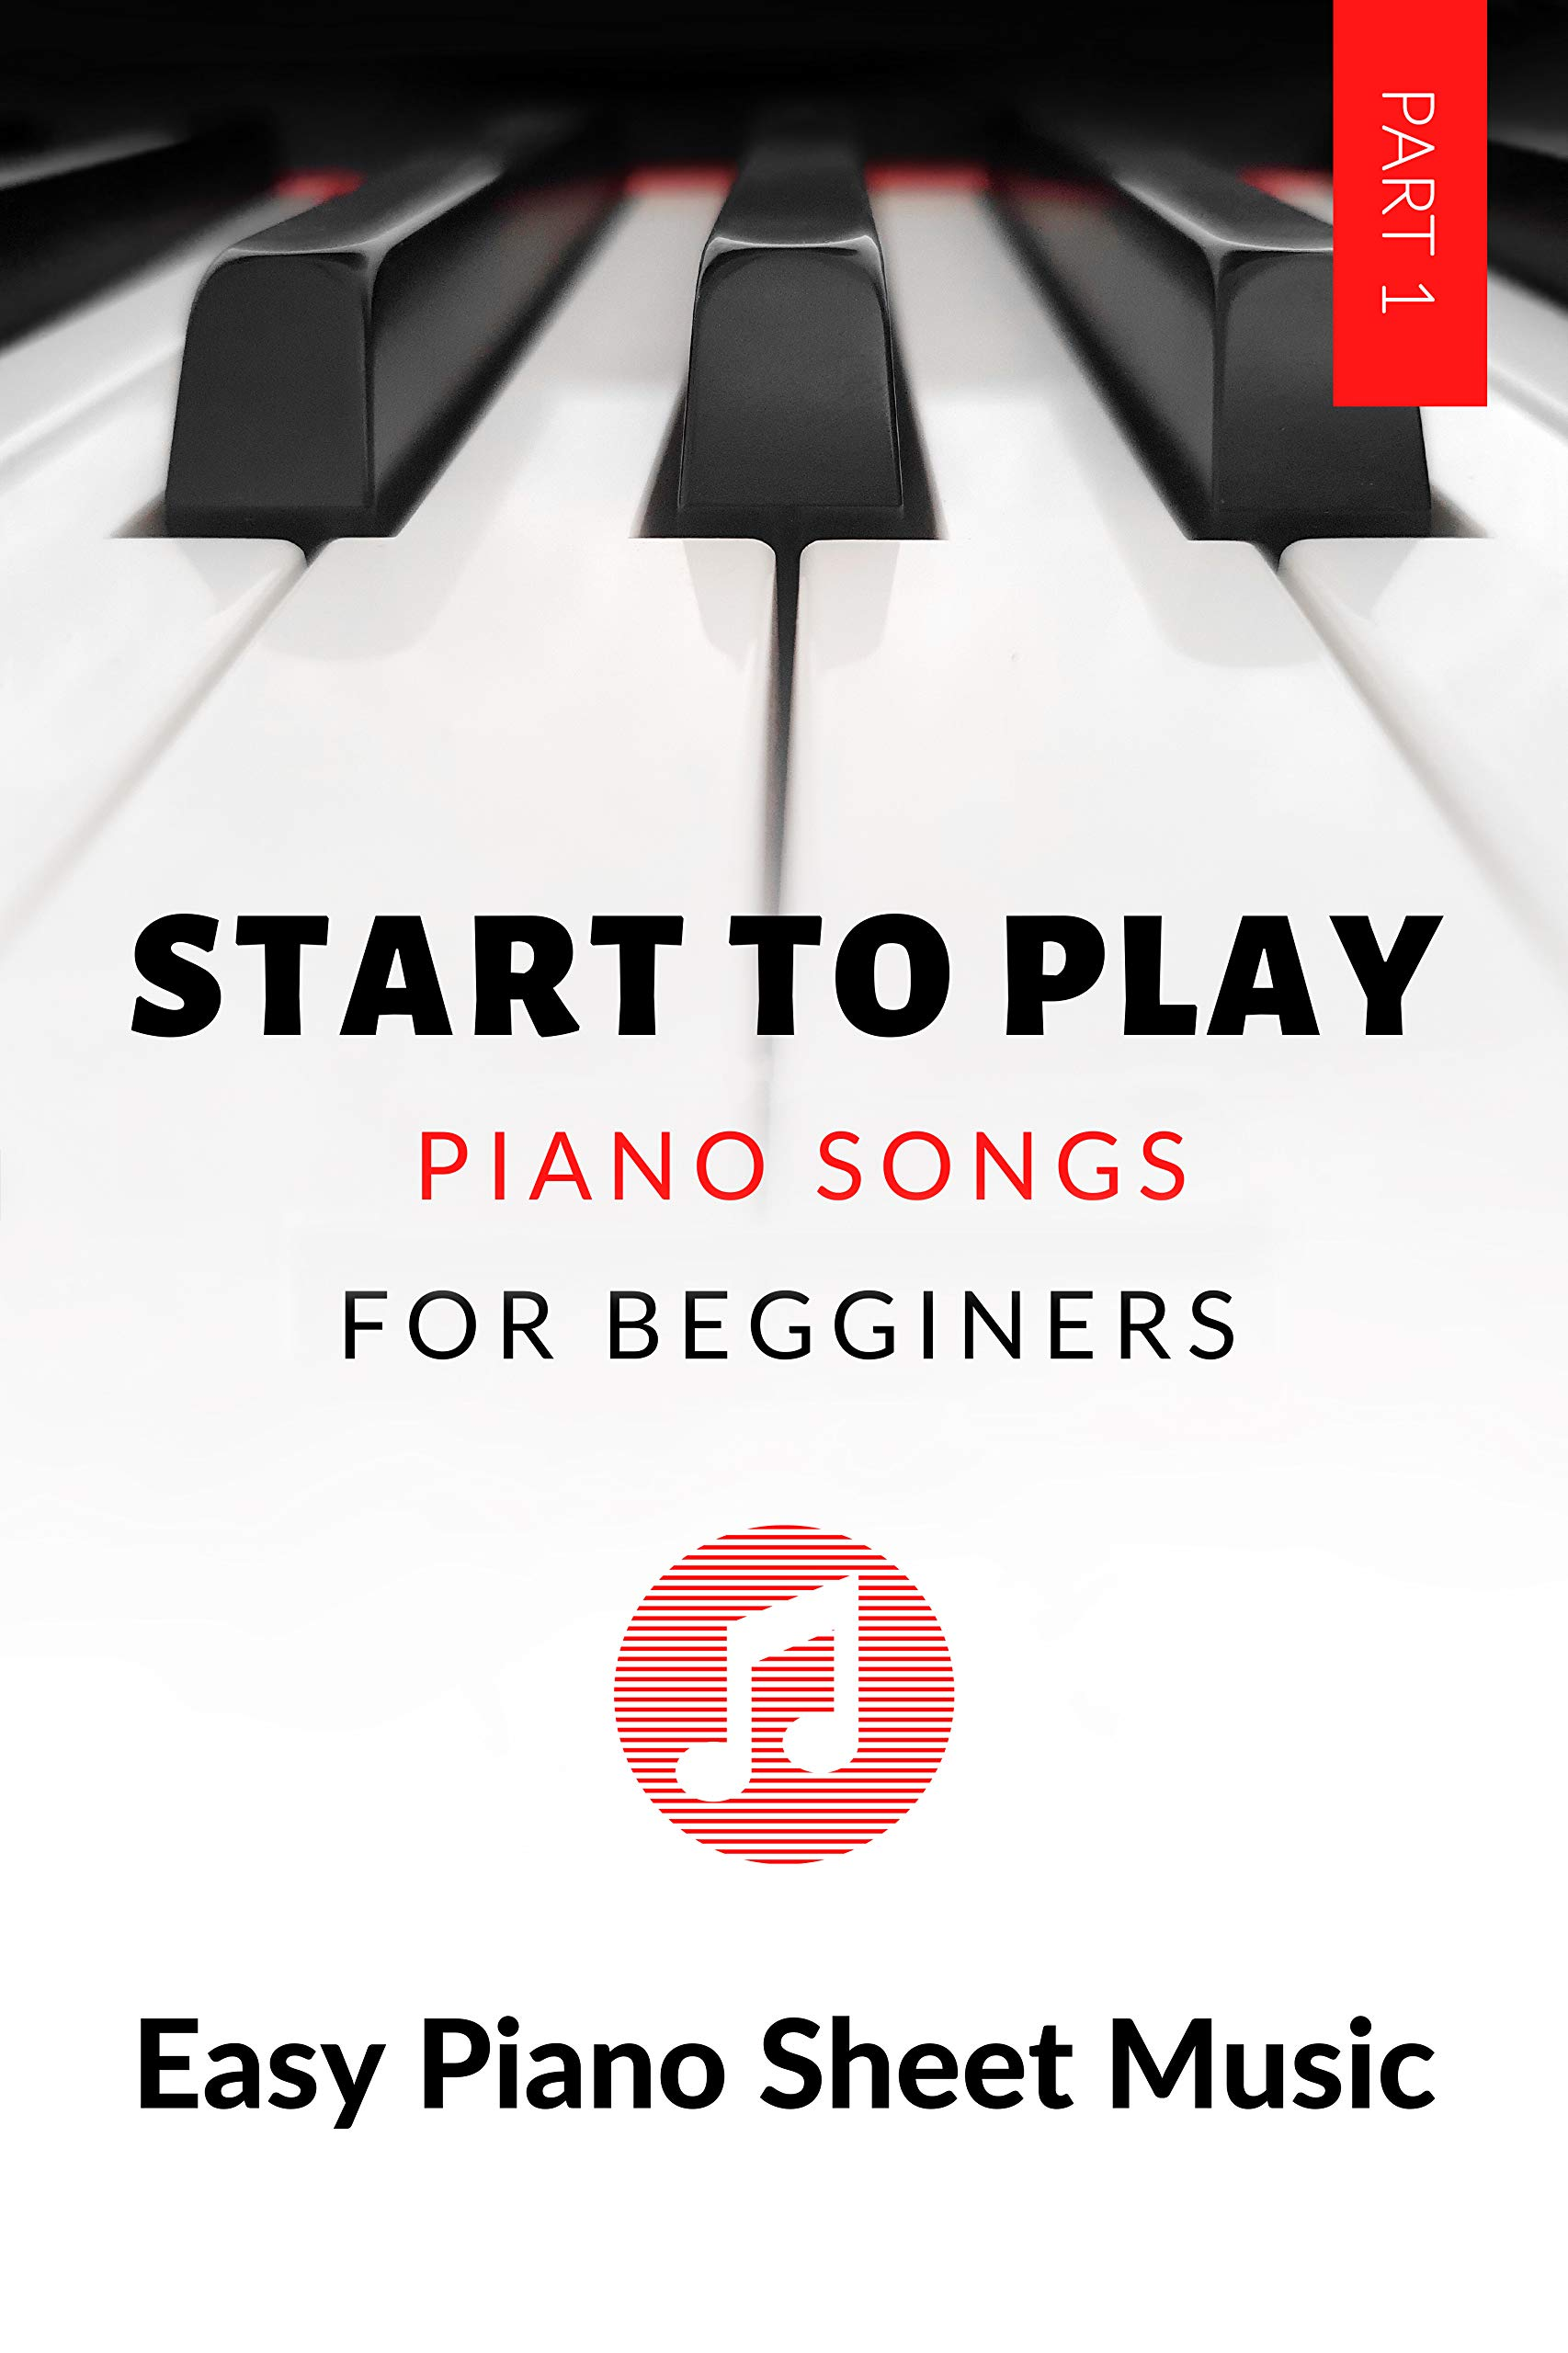 START TO PLAY - Piano Songs For Begginers – Big notes : The Easiest Easy Piano Sheet Music - Lovely Easy Version - Keyboard Piano Book - for music teachers